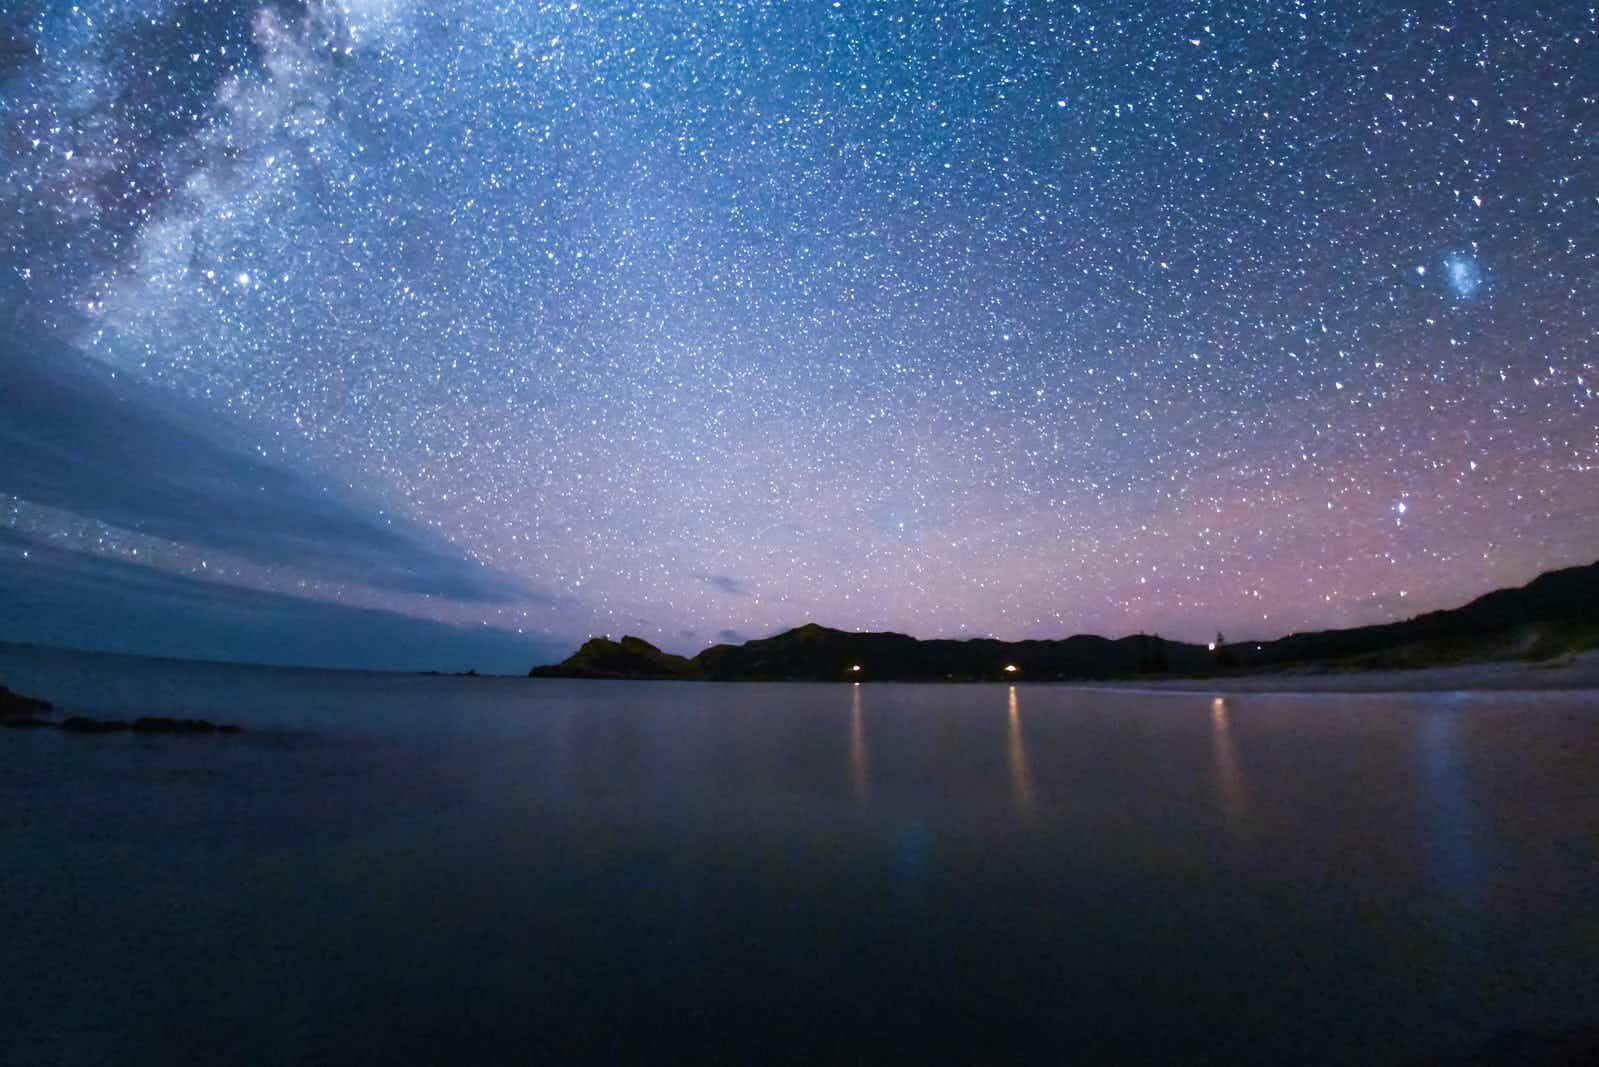 An entire island in New Zealand has been designated an International Dark Sky Sanctuary